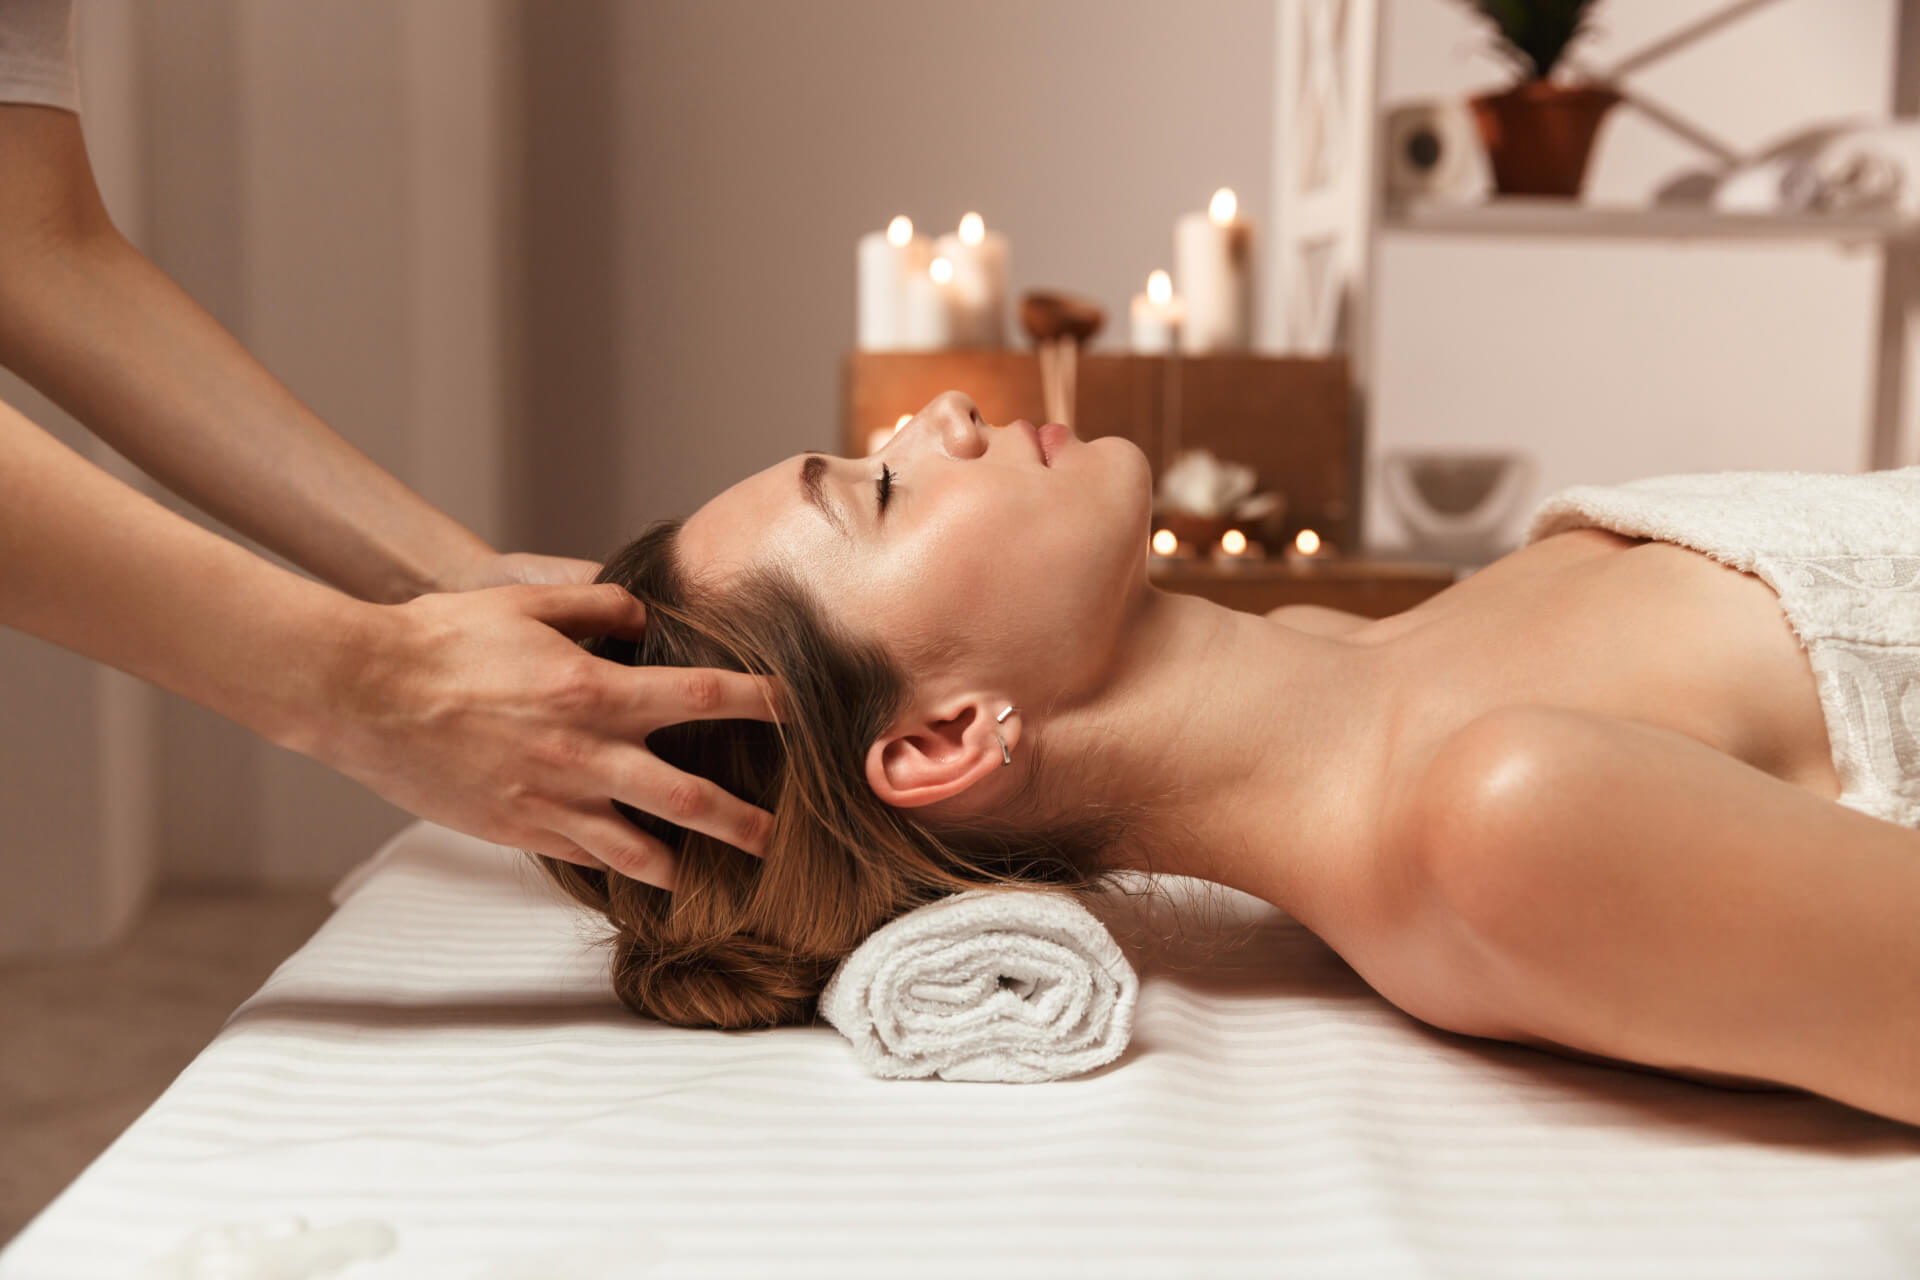 Body massages and treatments